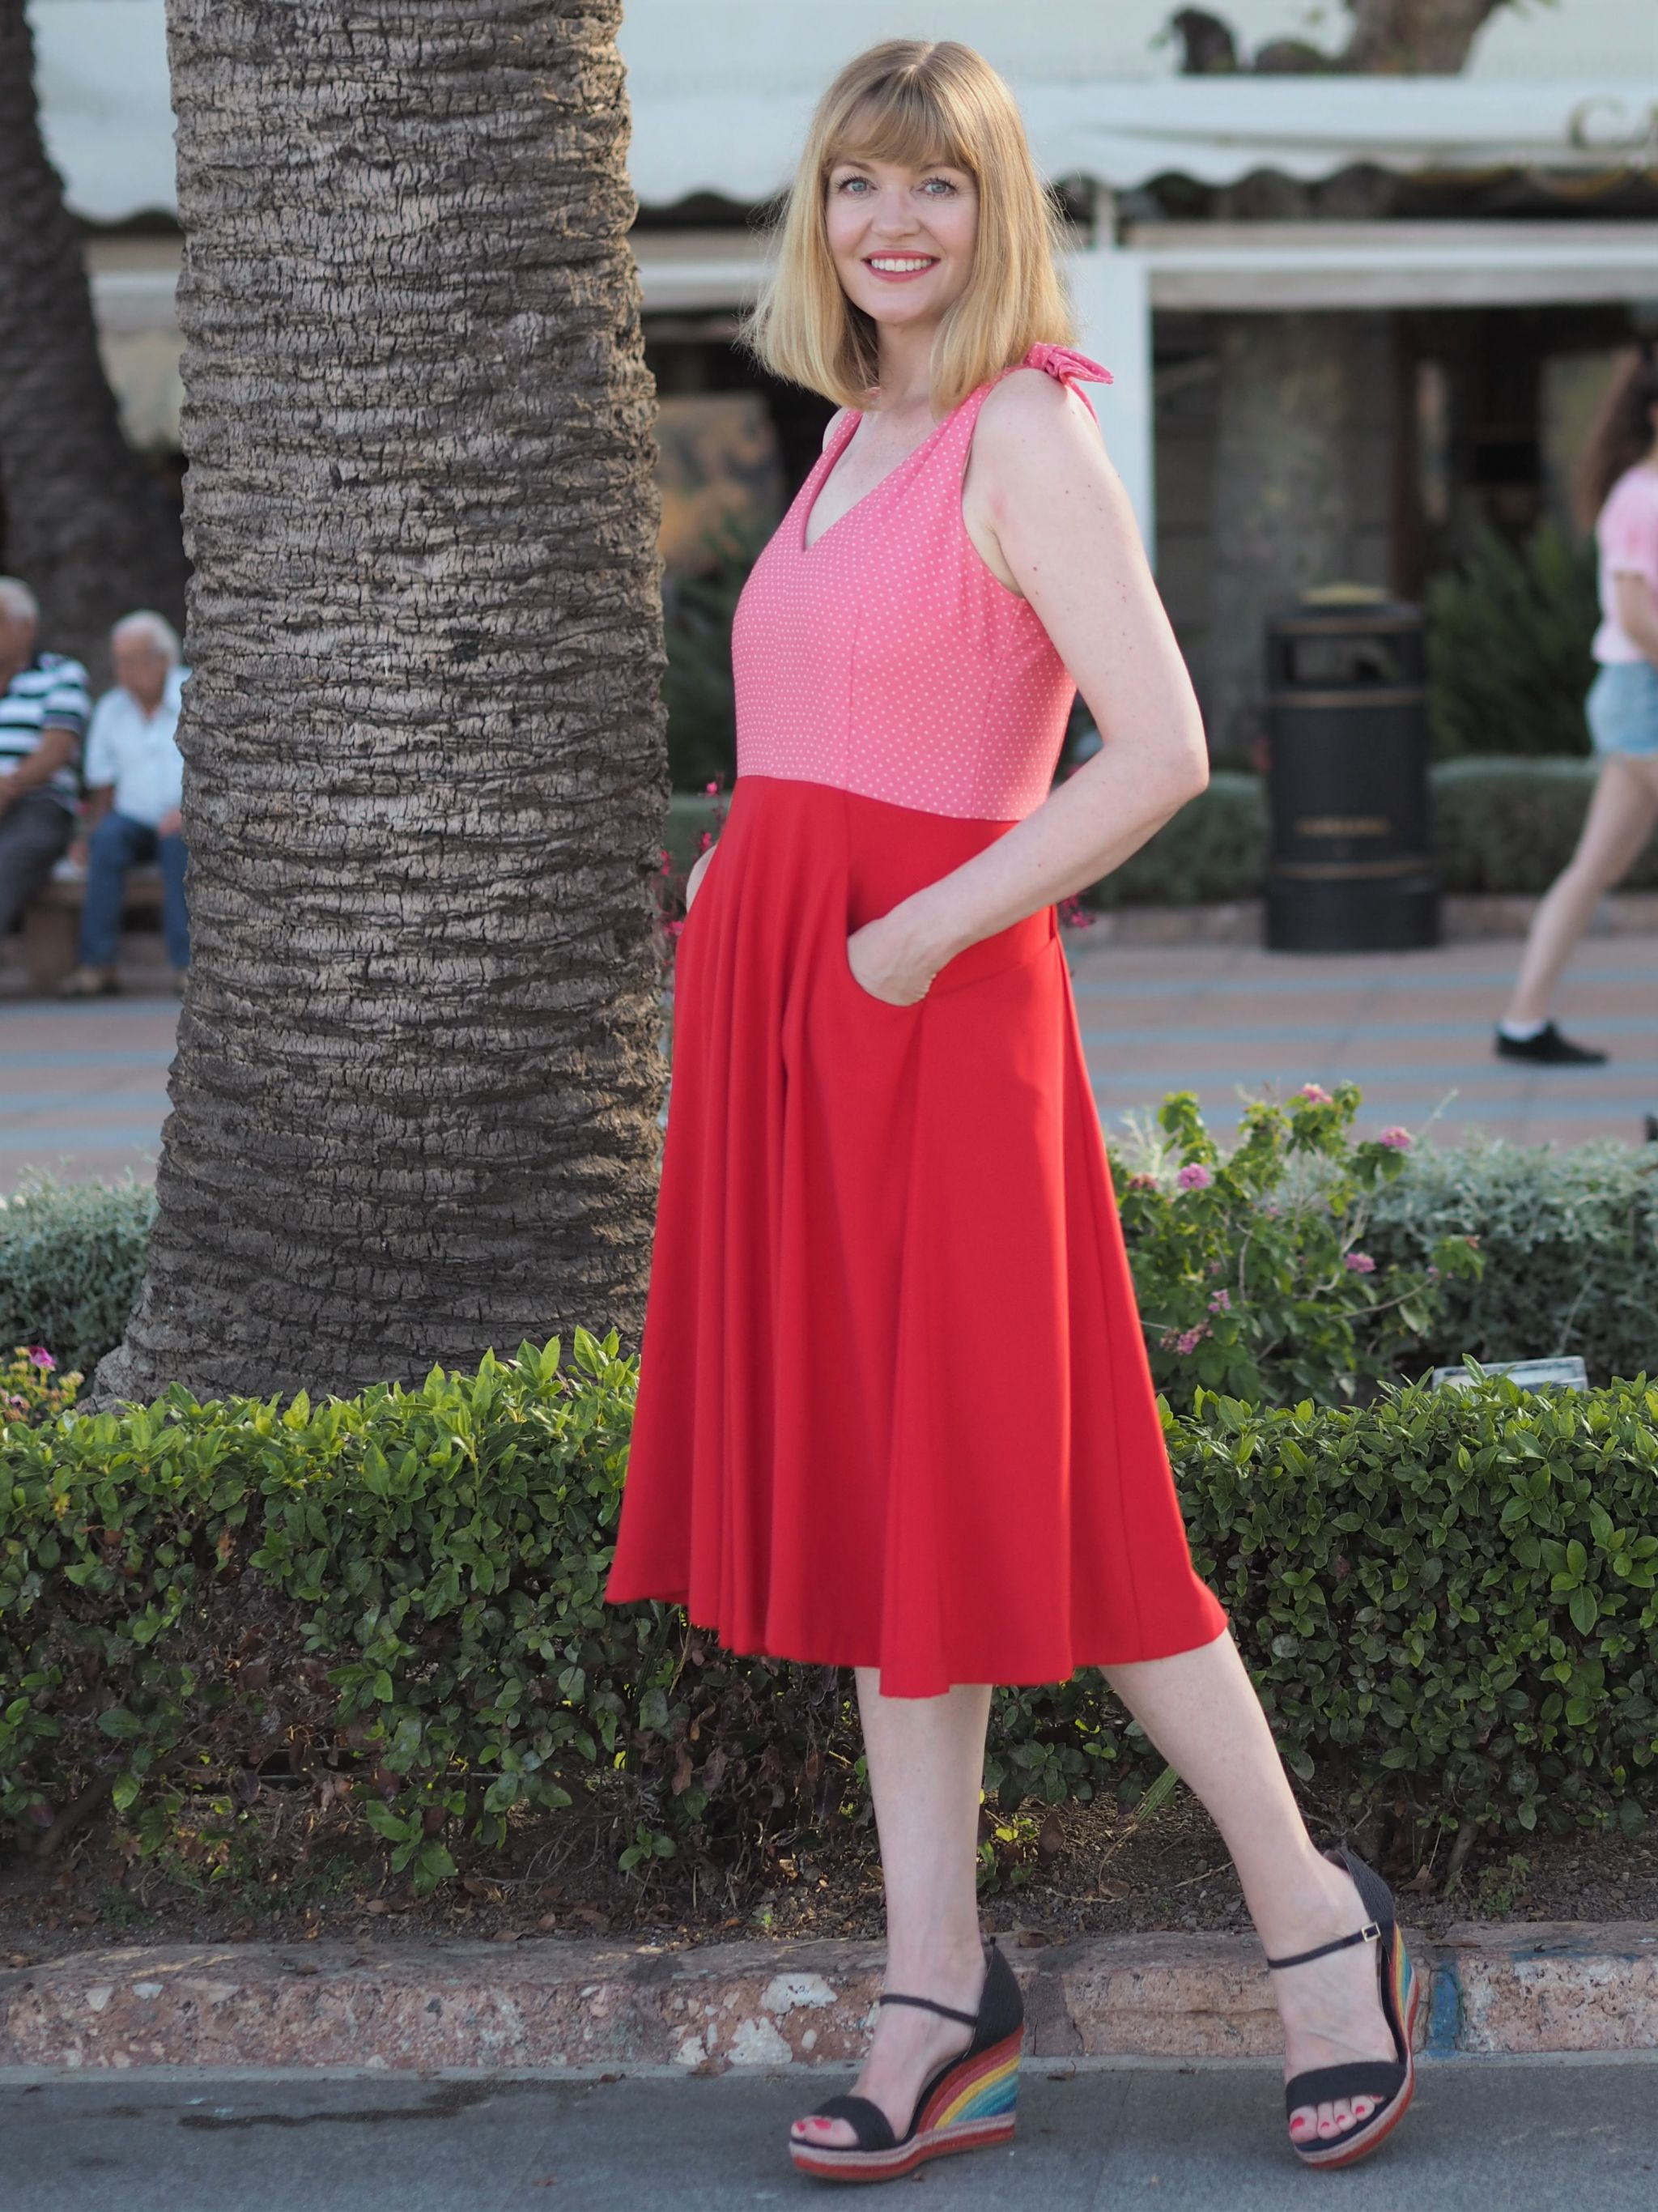 red and pink fifties style sundress with rainbow wedges